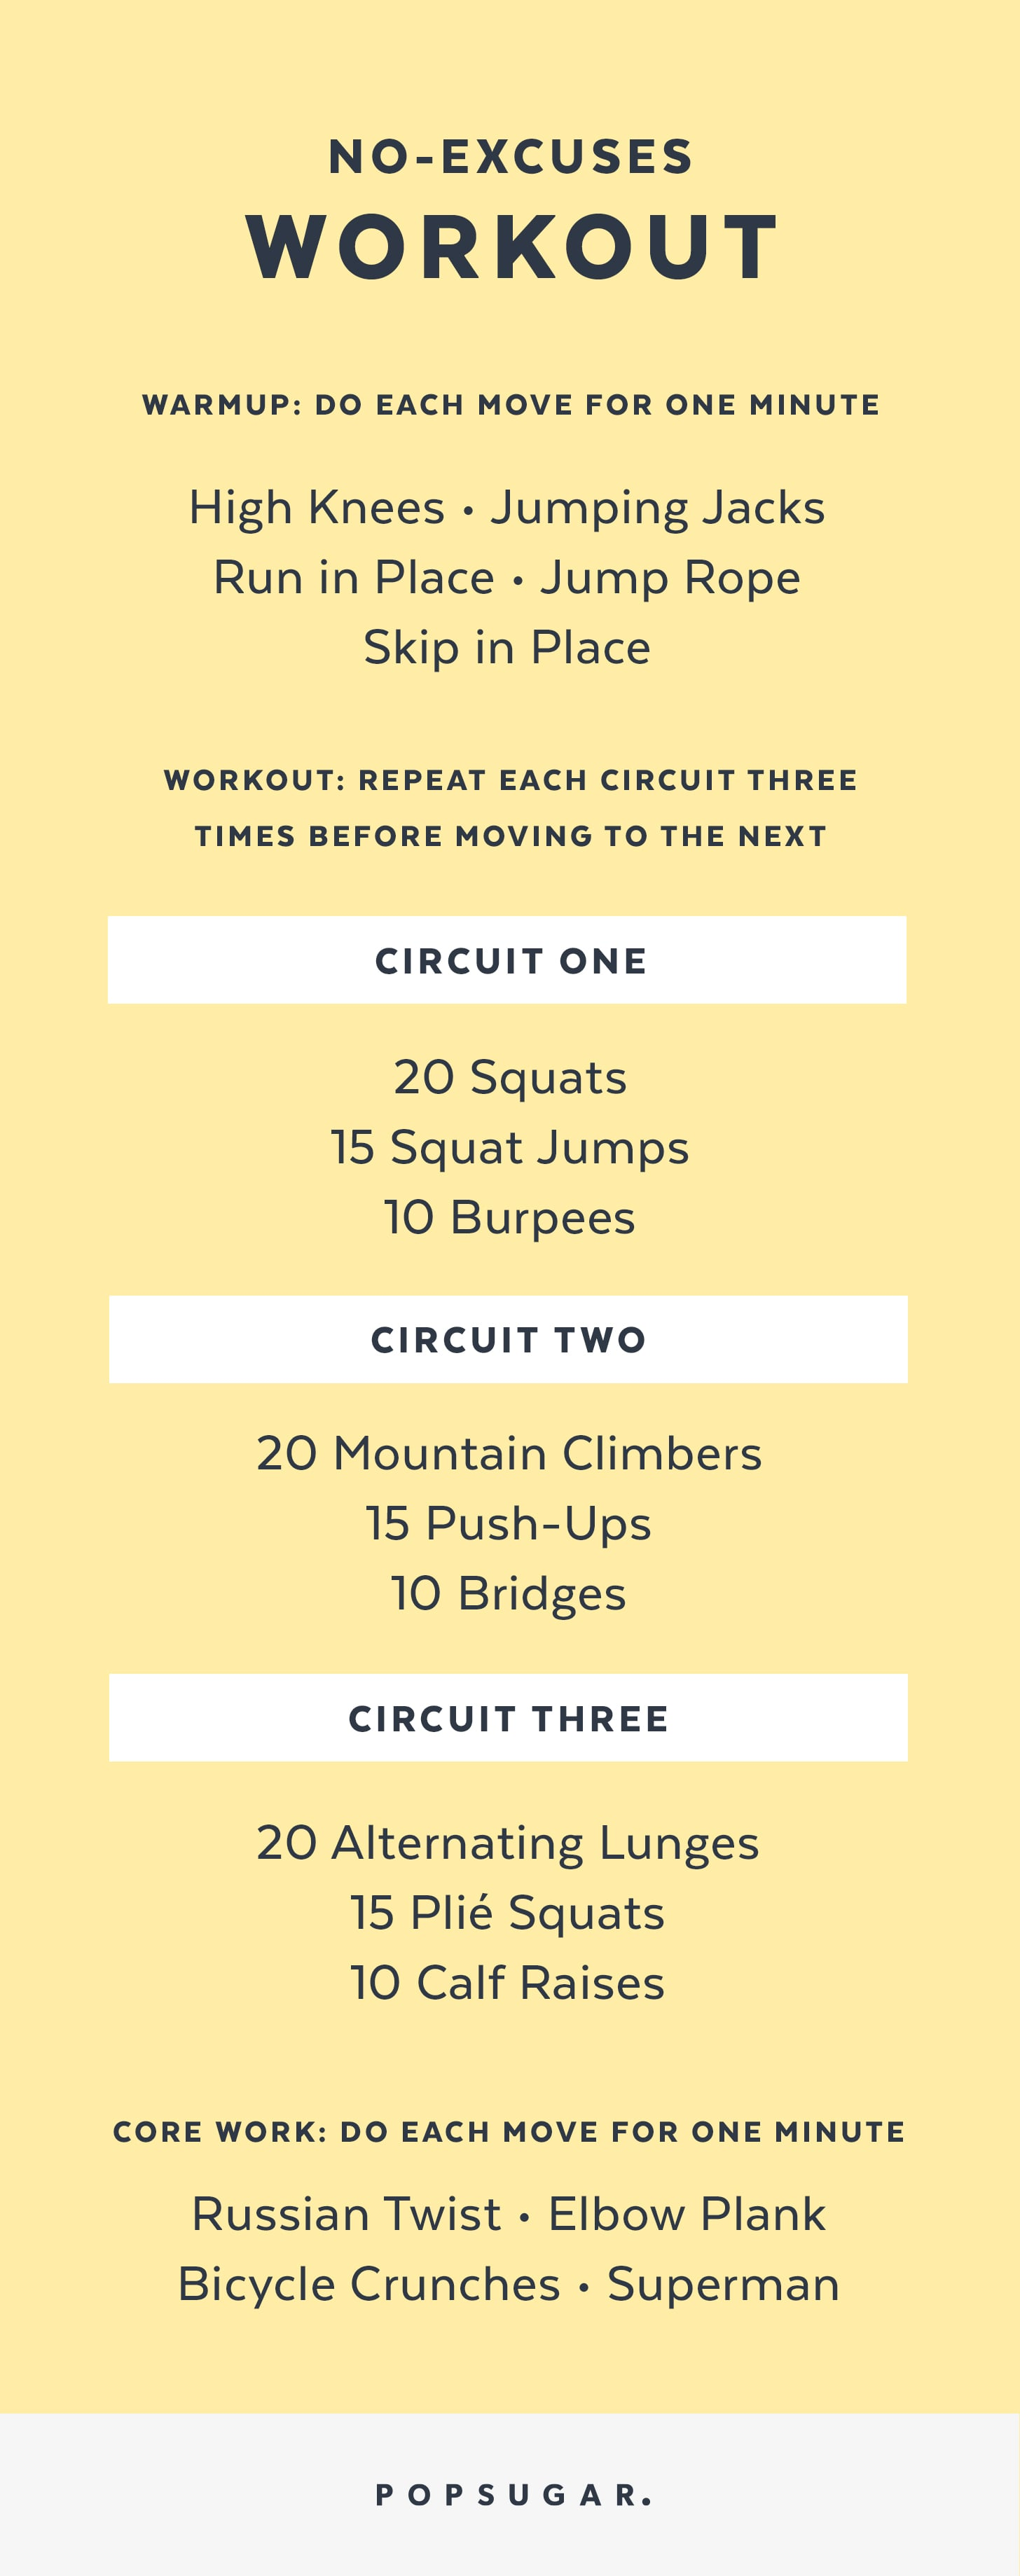 Printable No-Excuses Workout That You Can Do Anywhere